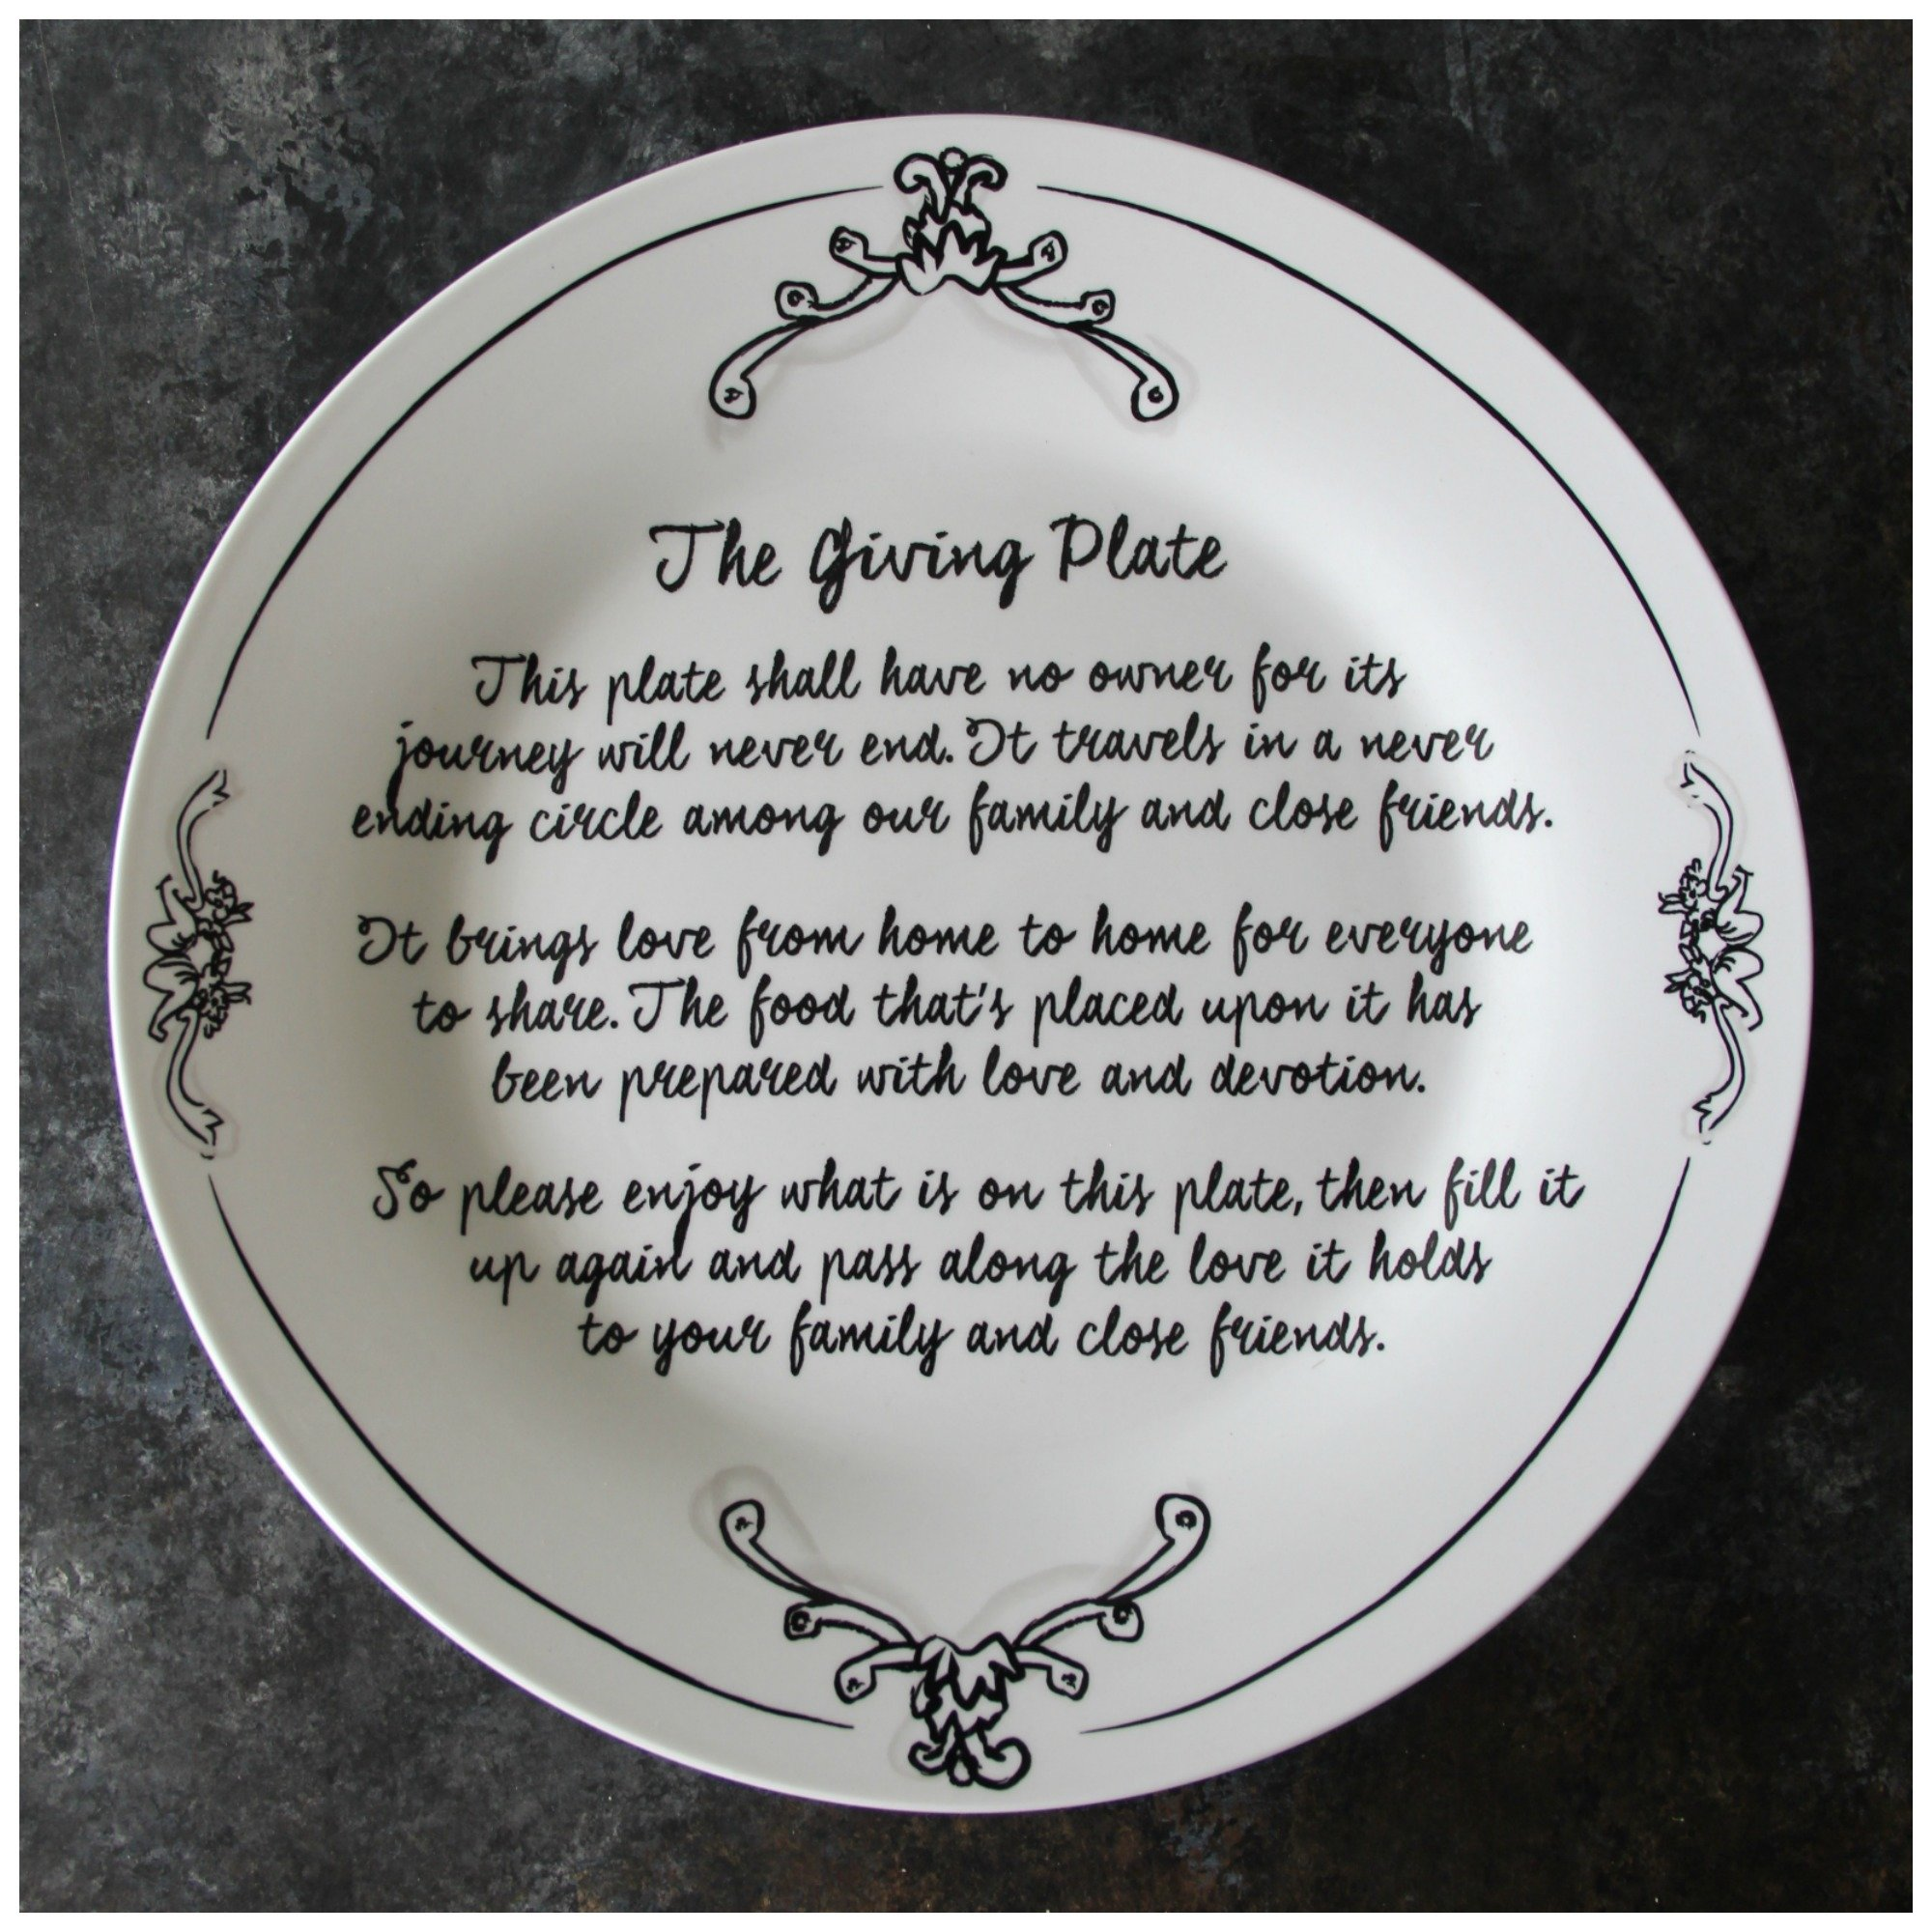 The Giving Plate 00008